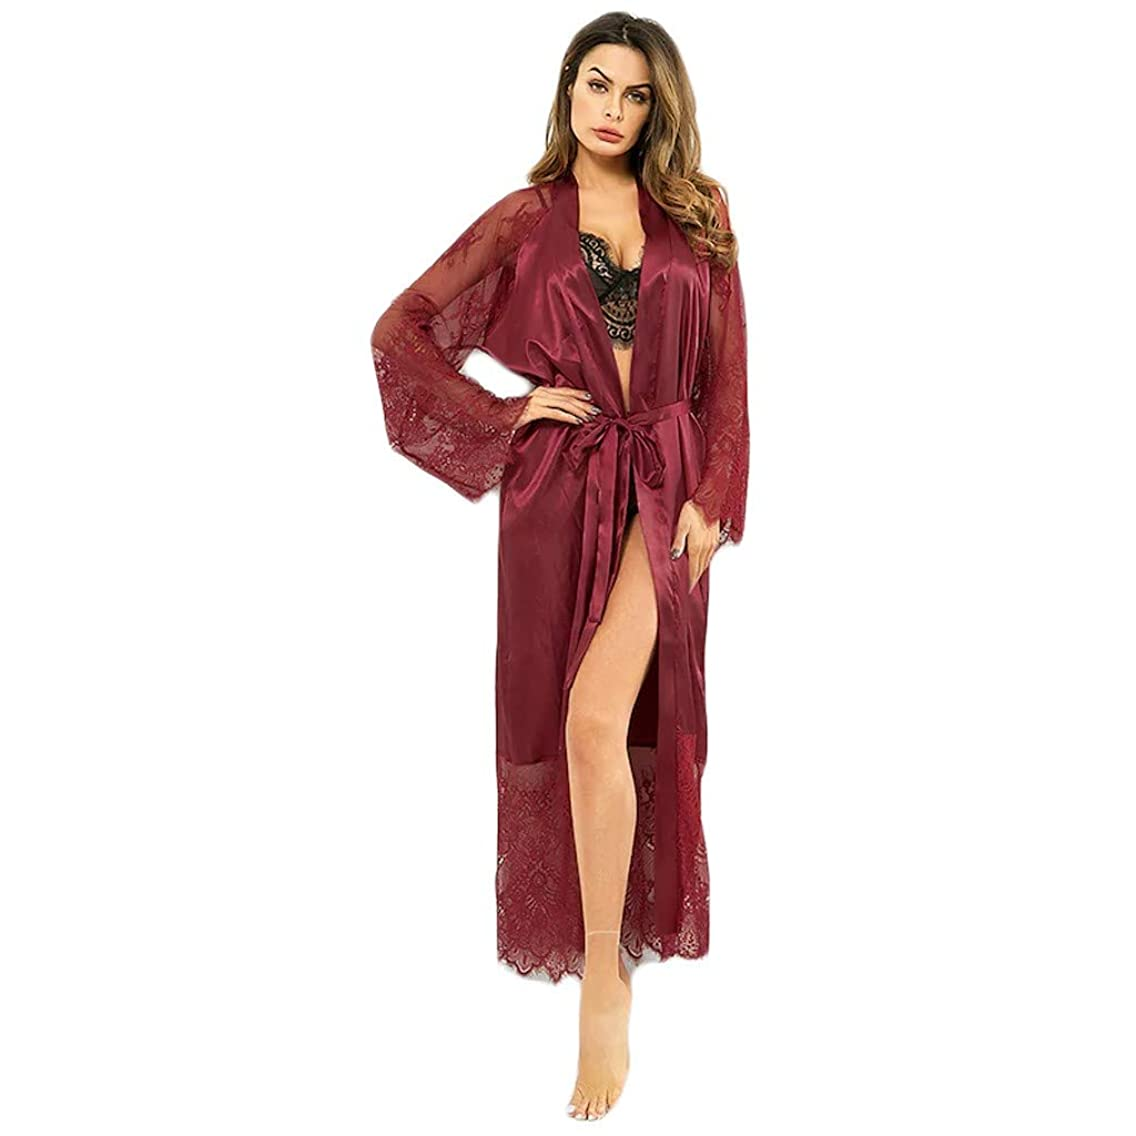 Womens Lace Trim Kimonos Robes Long Satin Gown Bathrobe Sleepwear Lace Sleeve Loungewear with Belt